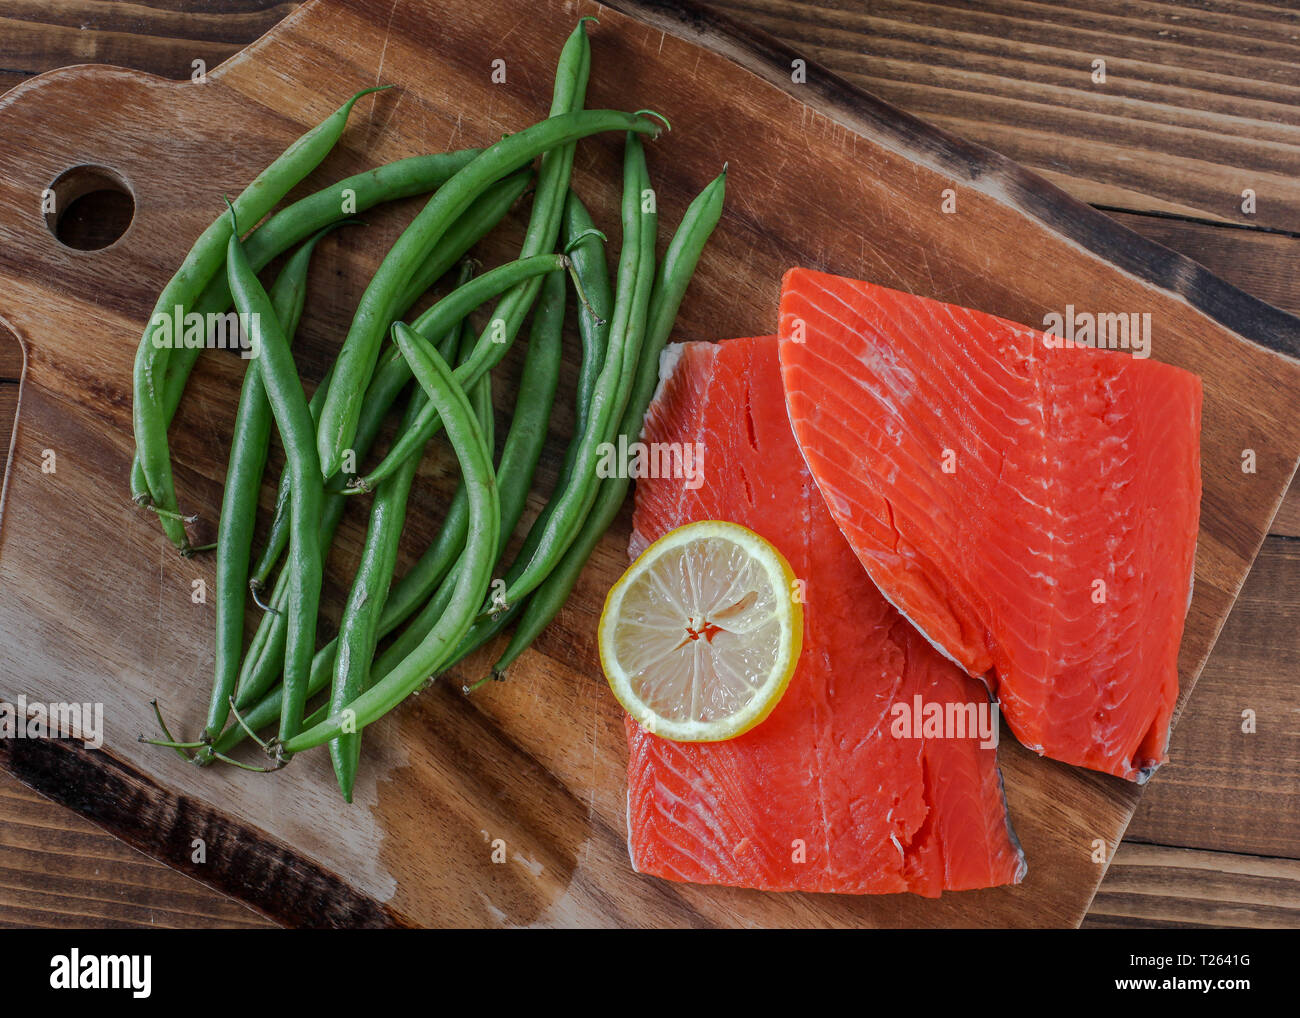 Sock eyed salmon with green beans and lemon - Stock Image